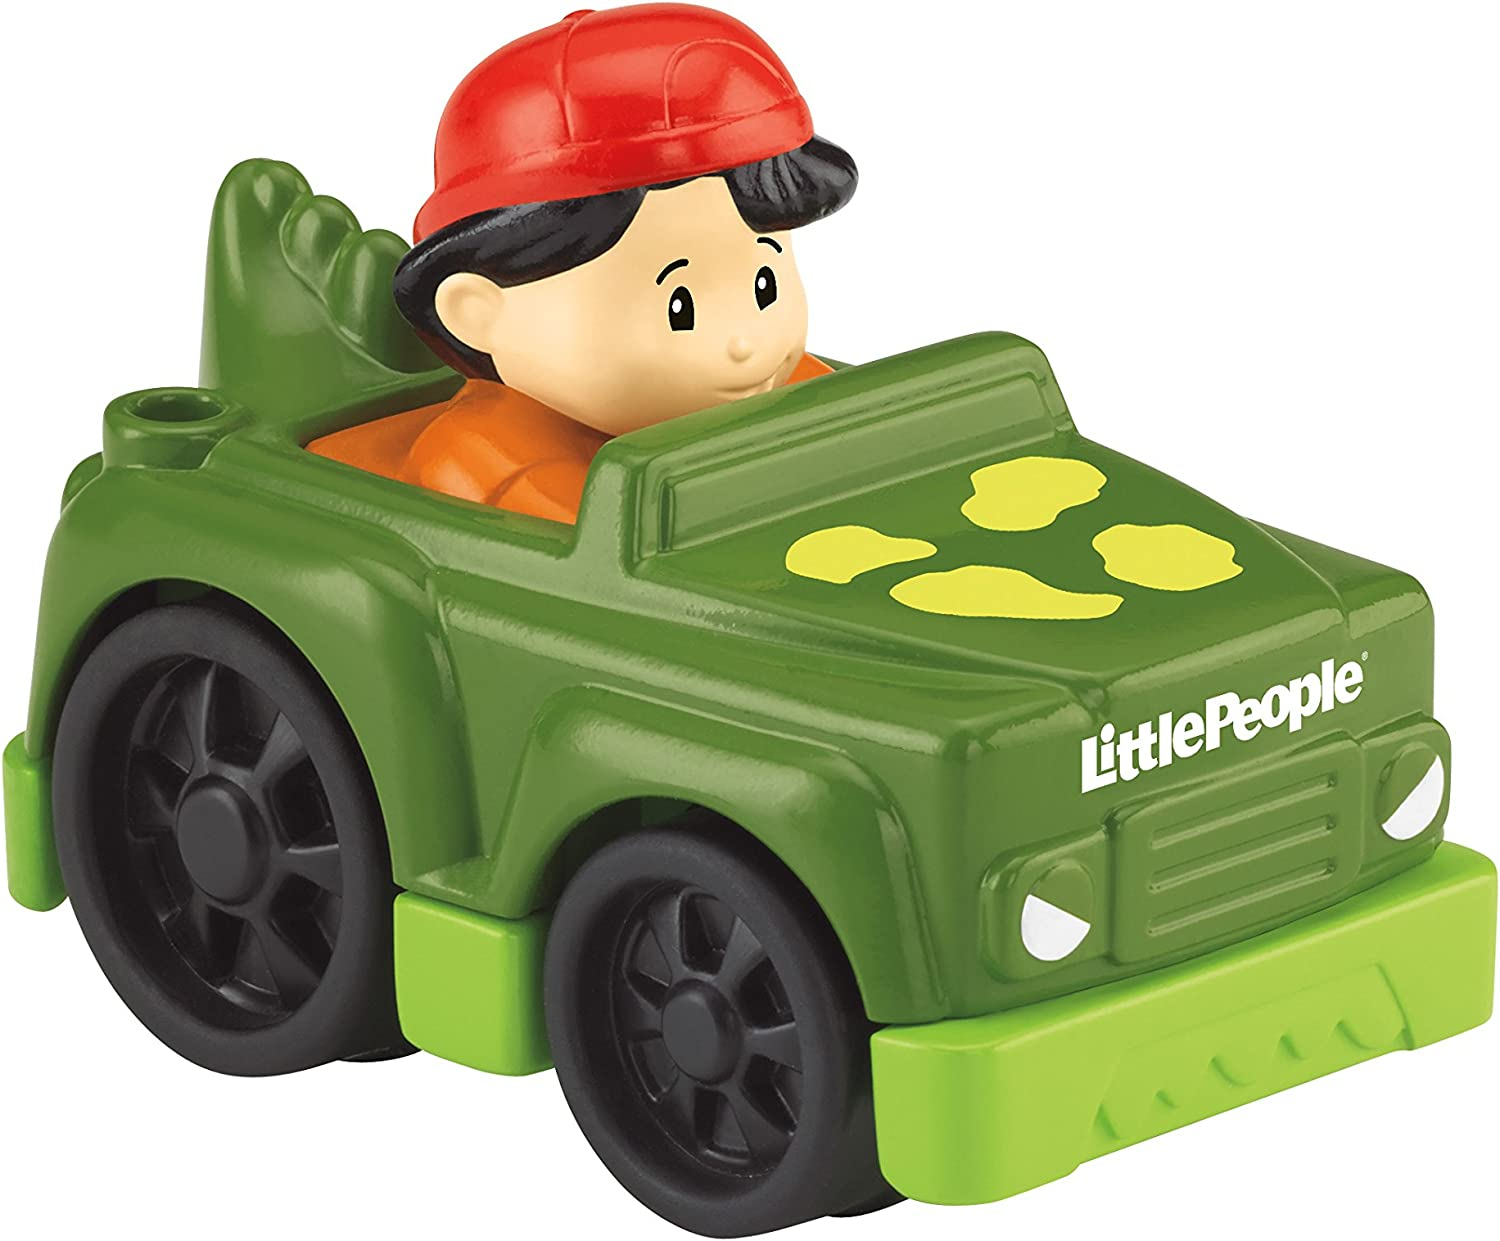 All stores are sold Fisher-Price Little People Wheelies Koby Cheap